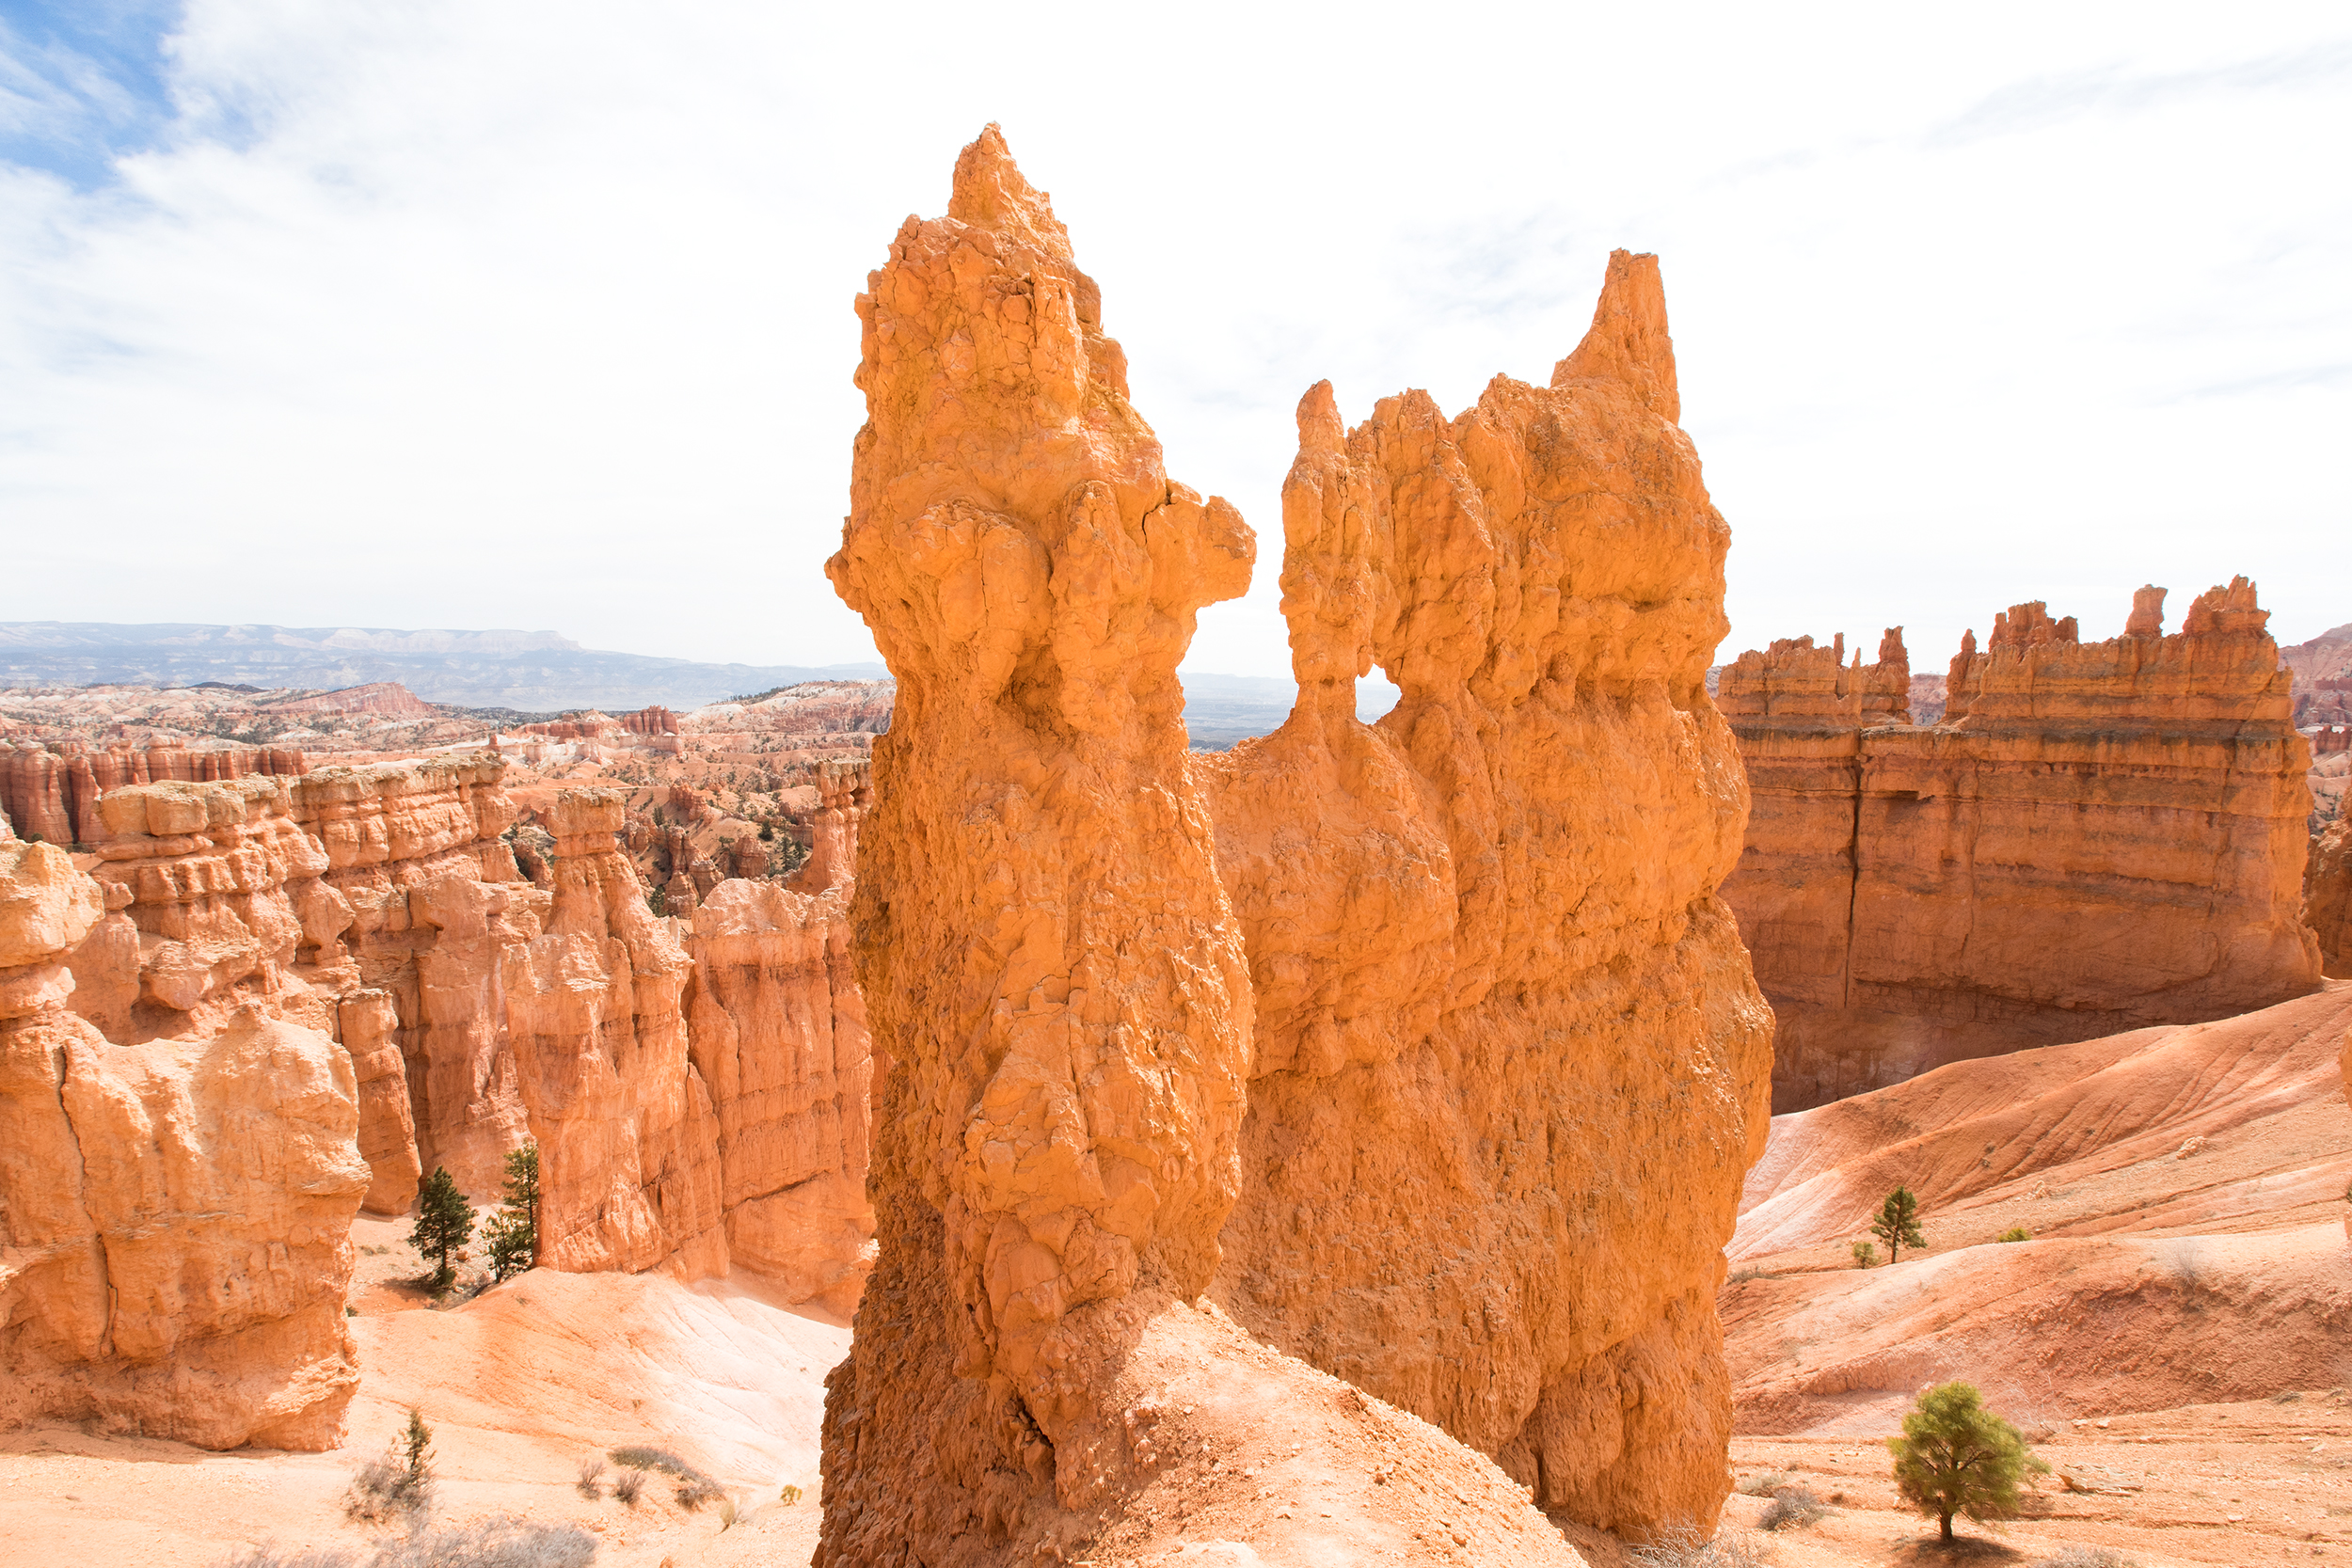 NATLPARKING_travel_rv_adventure_brycecanyon_0633_WB